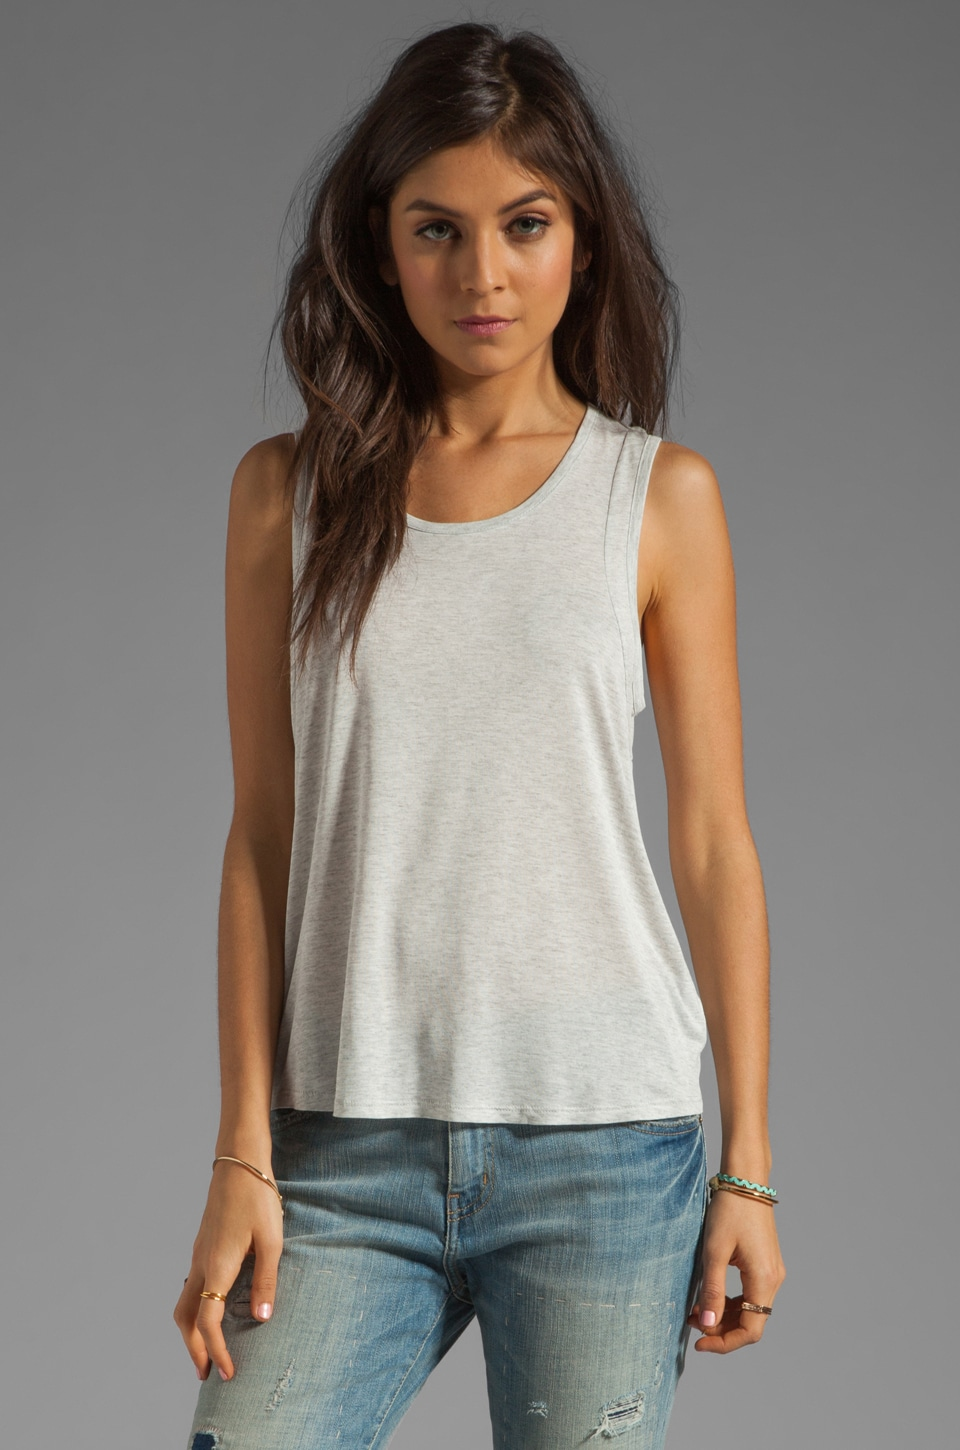 Enza Costa Rayon Jersey Panel Tank in Perla